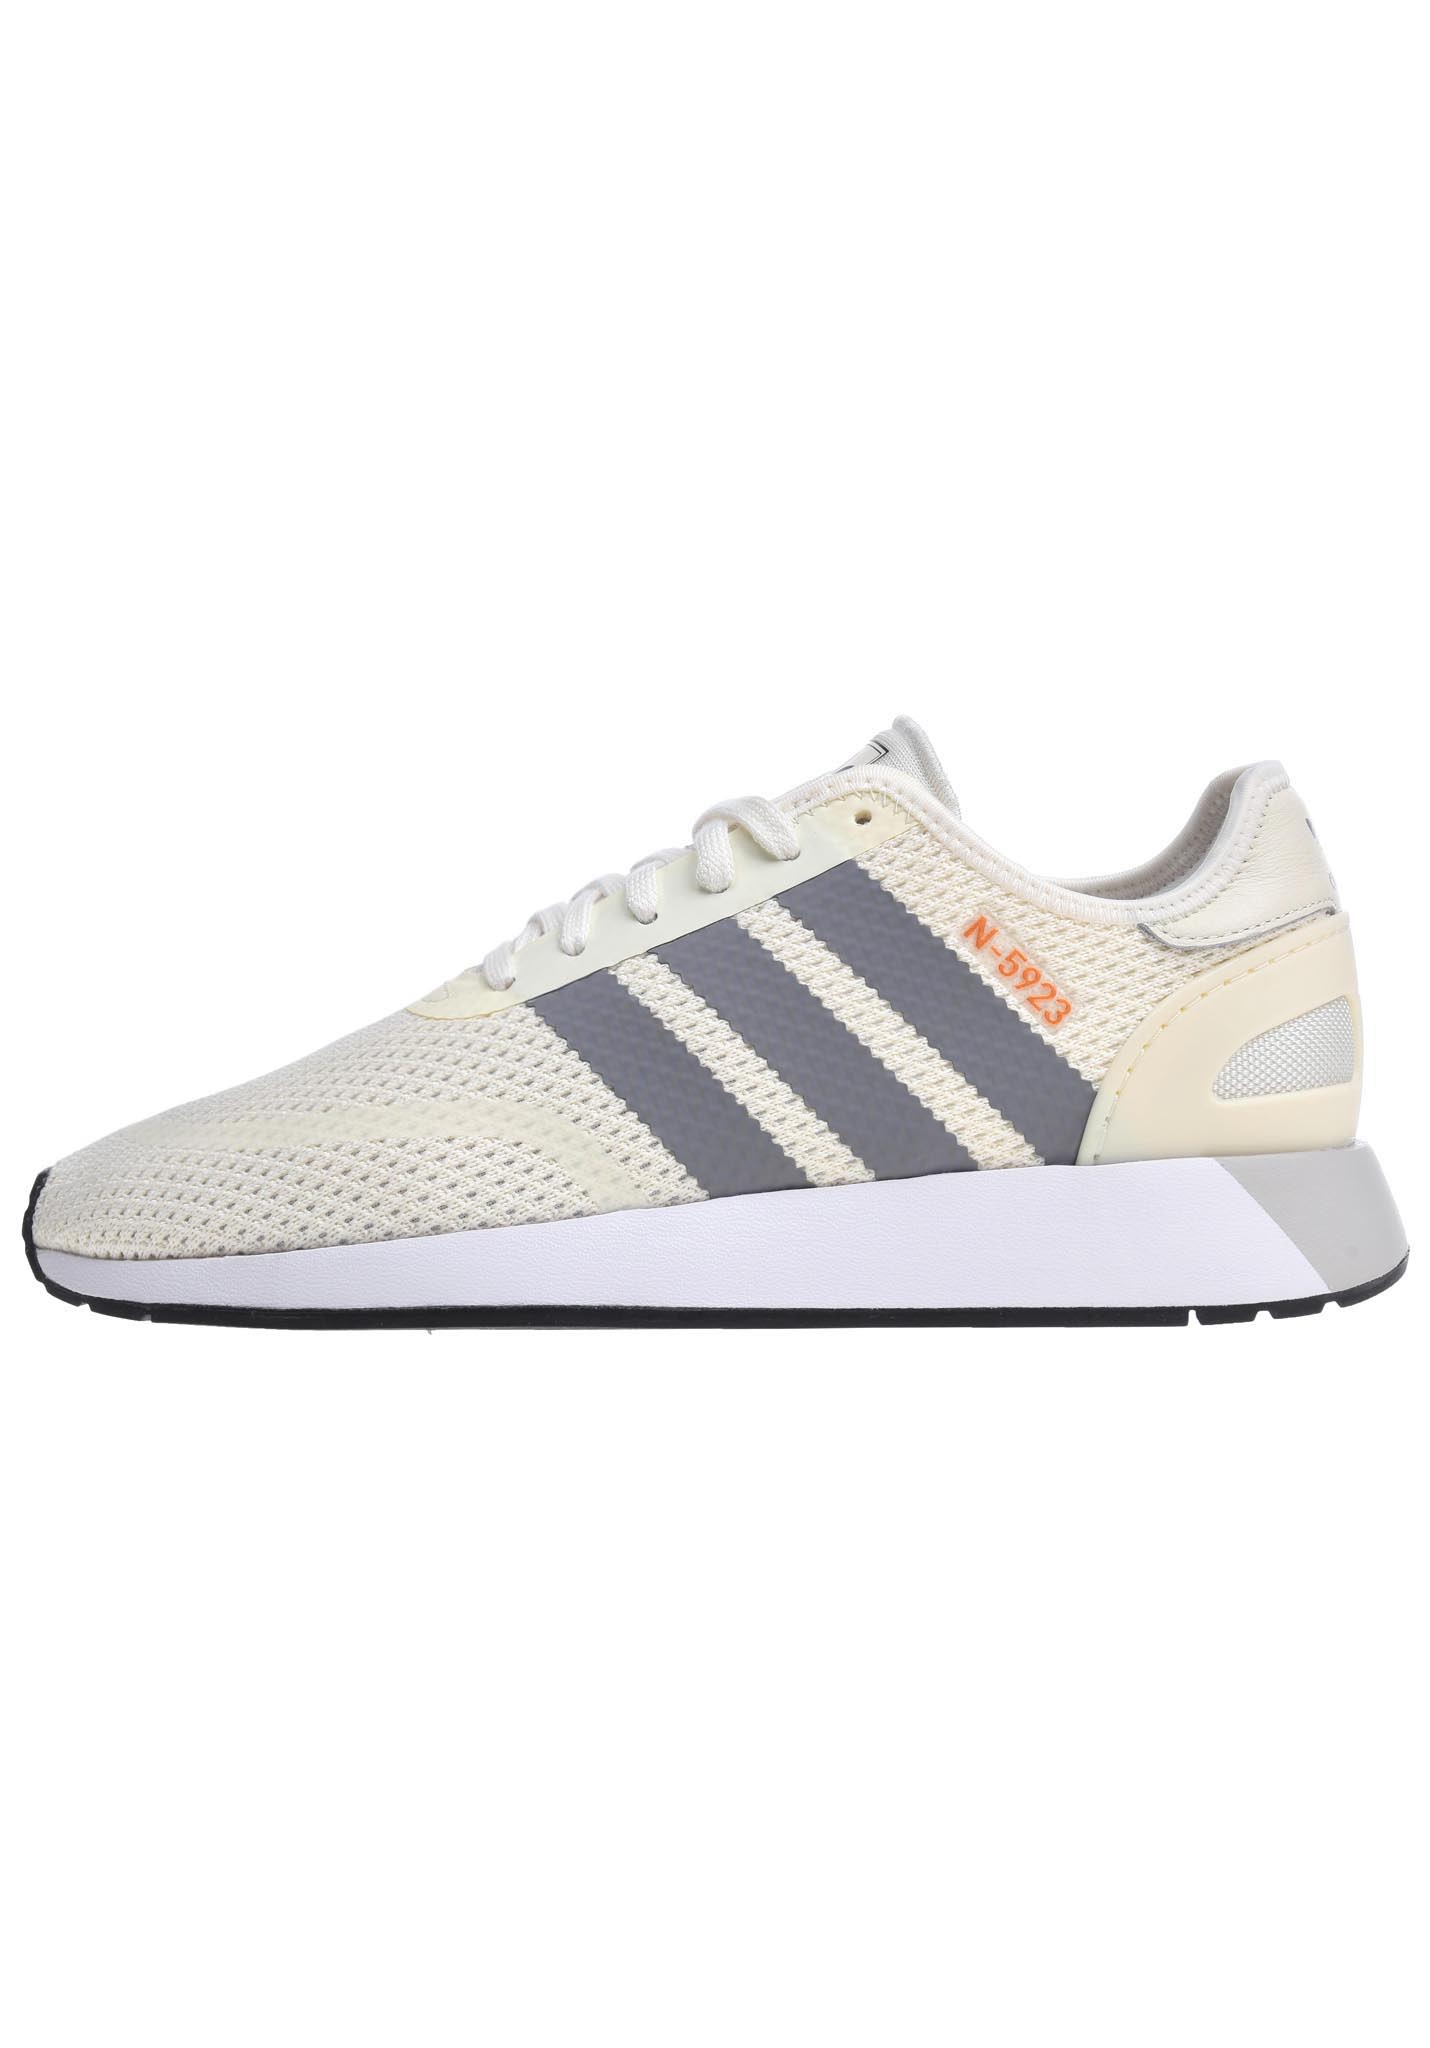 newest 12480 59e2c ADIDAS ORIGINALS N-5923 - Sneakers for Men - Beige - Planet Sports